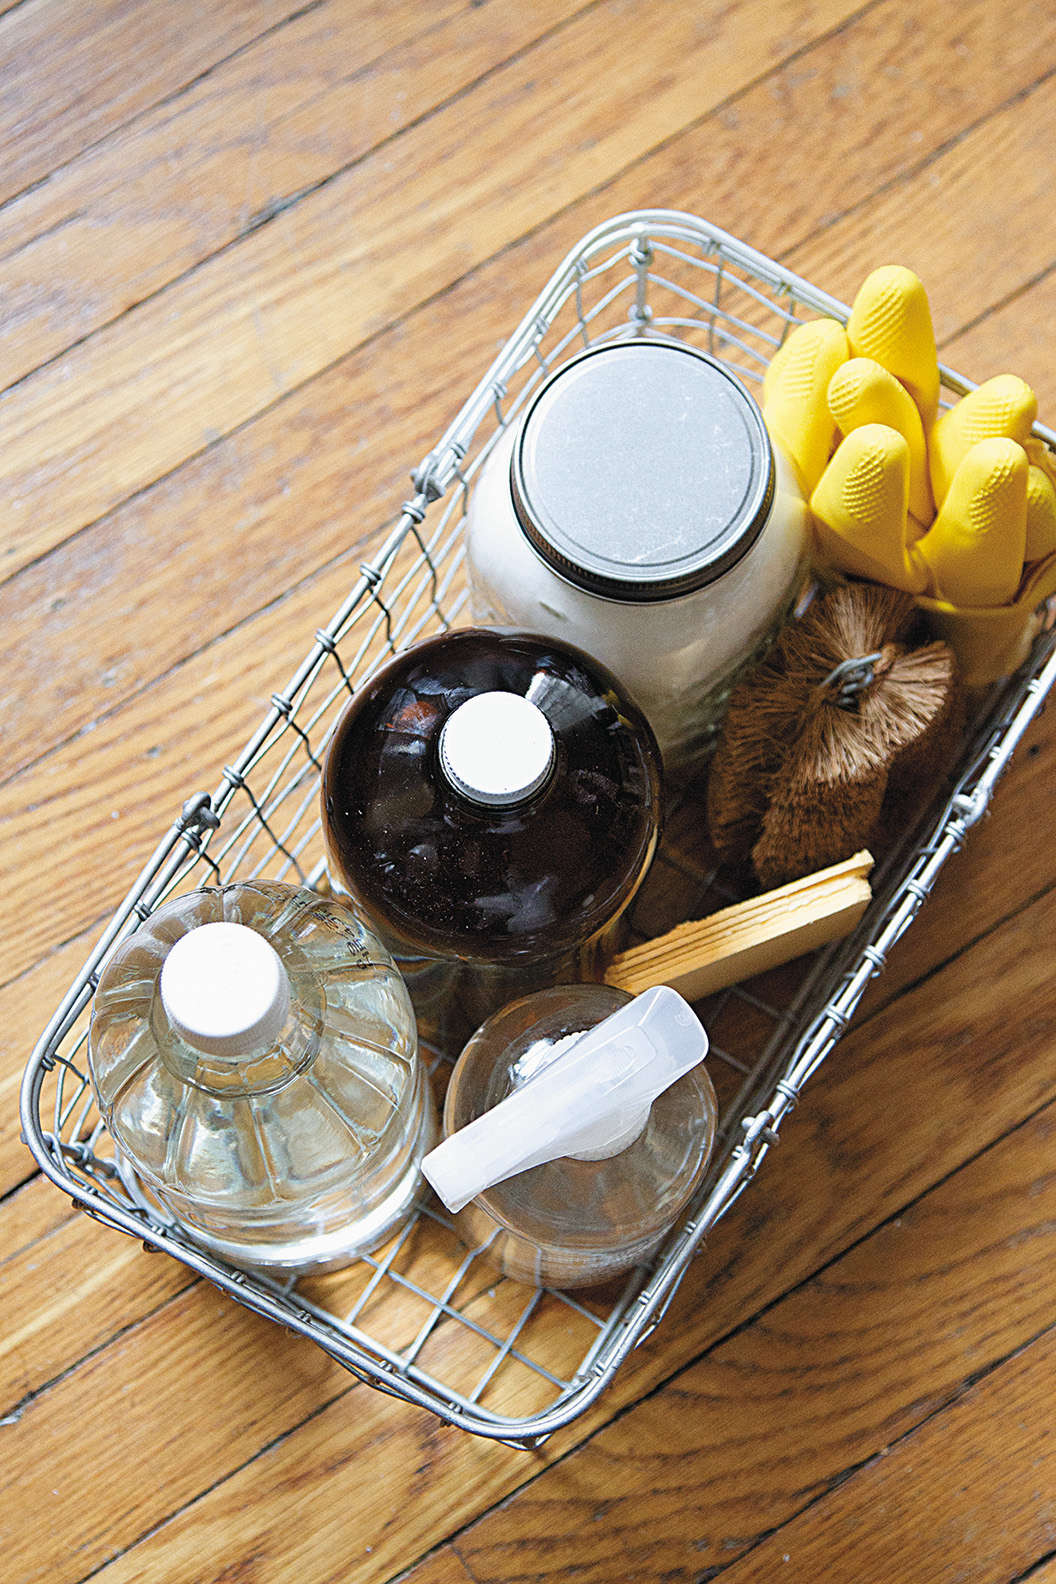 Expert Advice: Editors' Top 23 Cleaning Tips